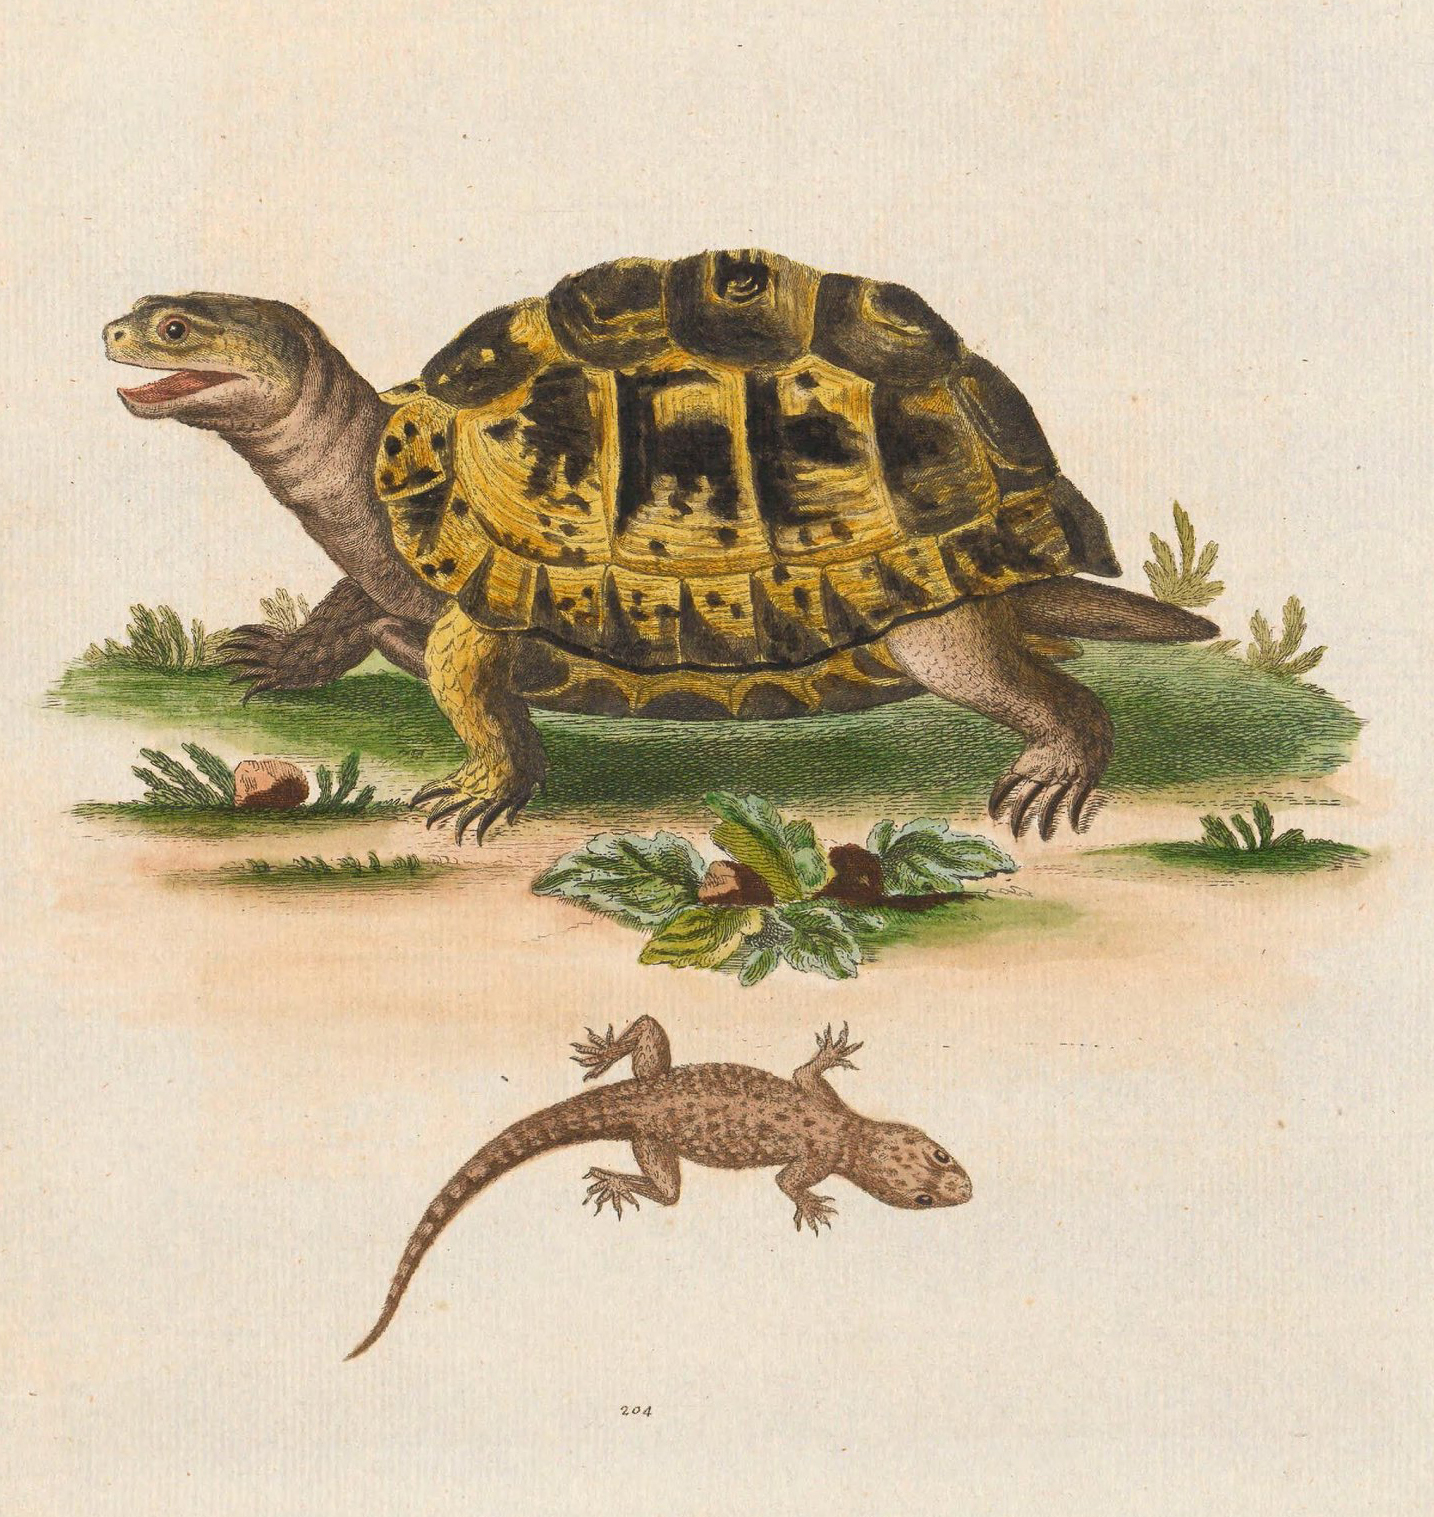 A turtle with a brown and yellow shell, illustrated above a brown lizard